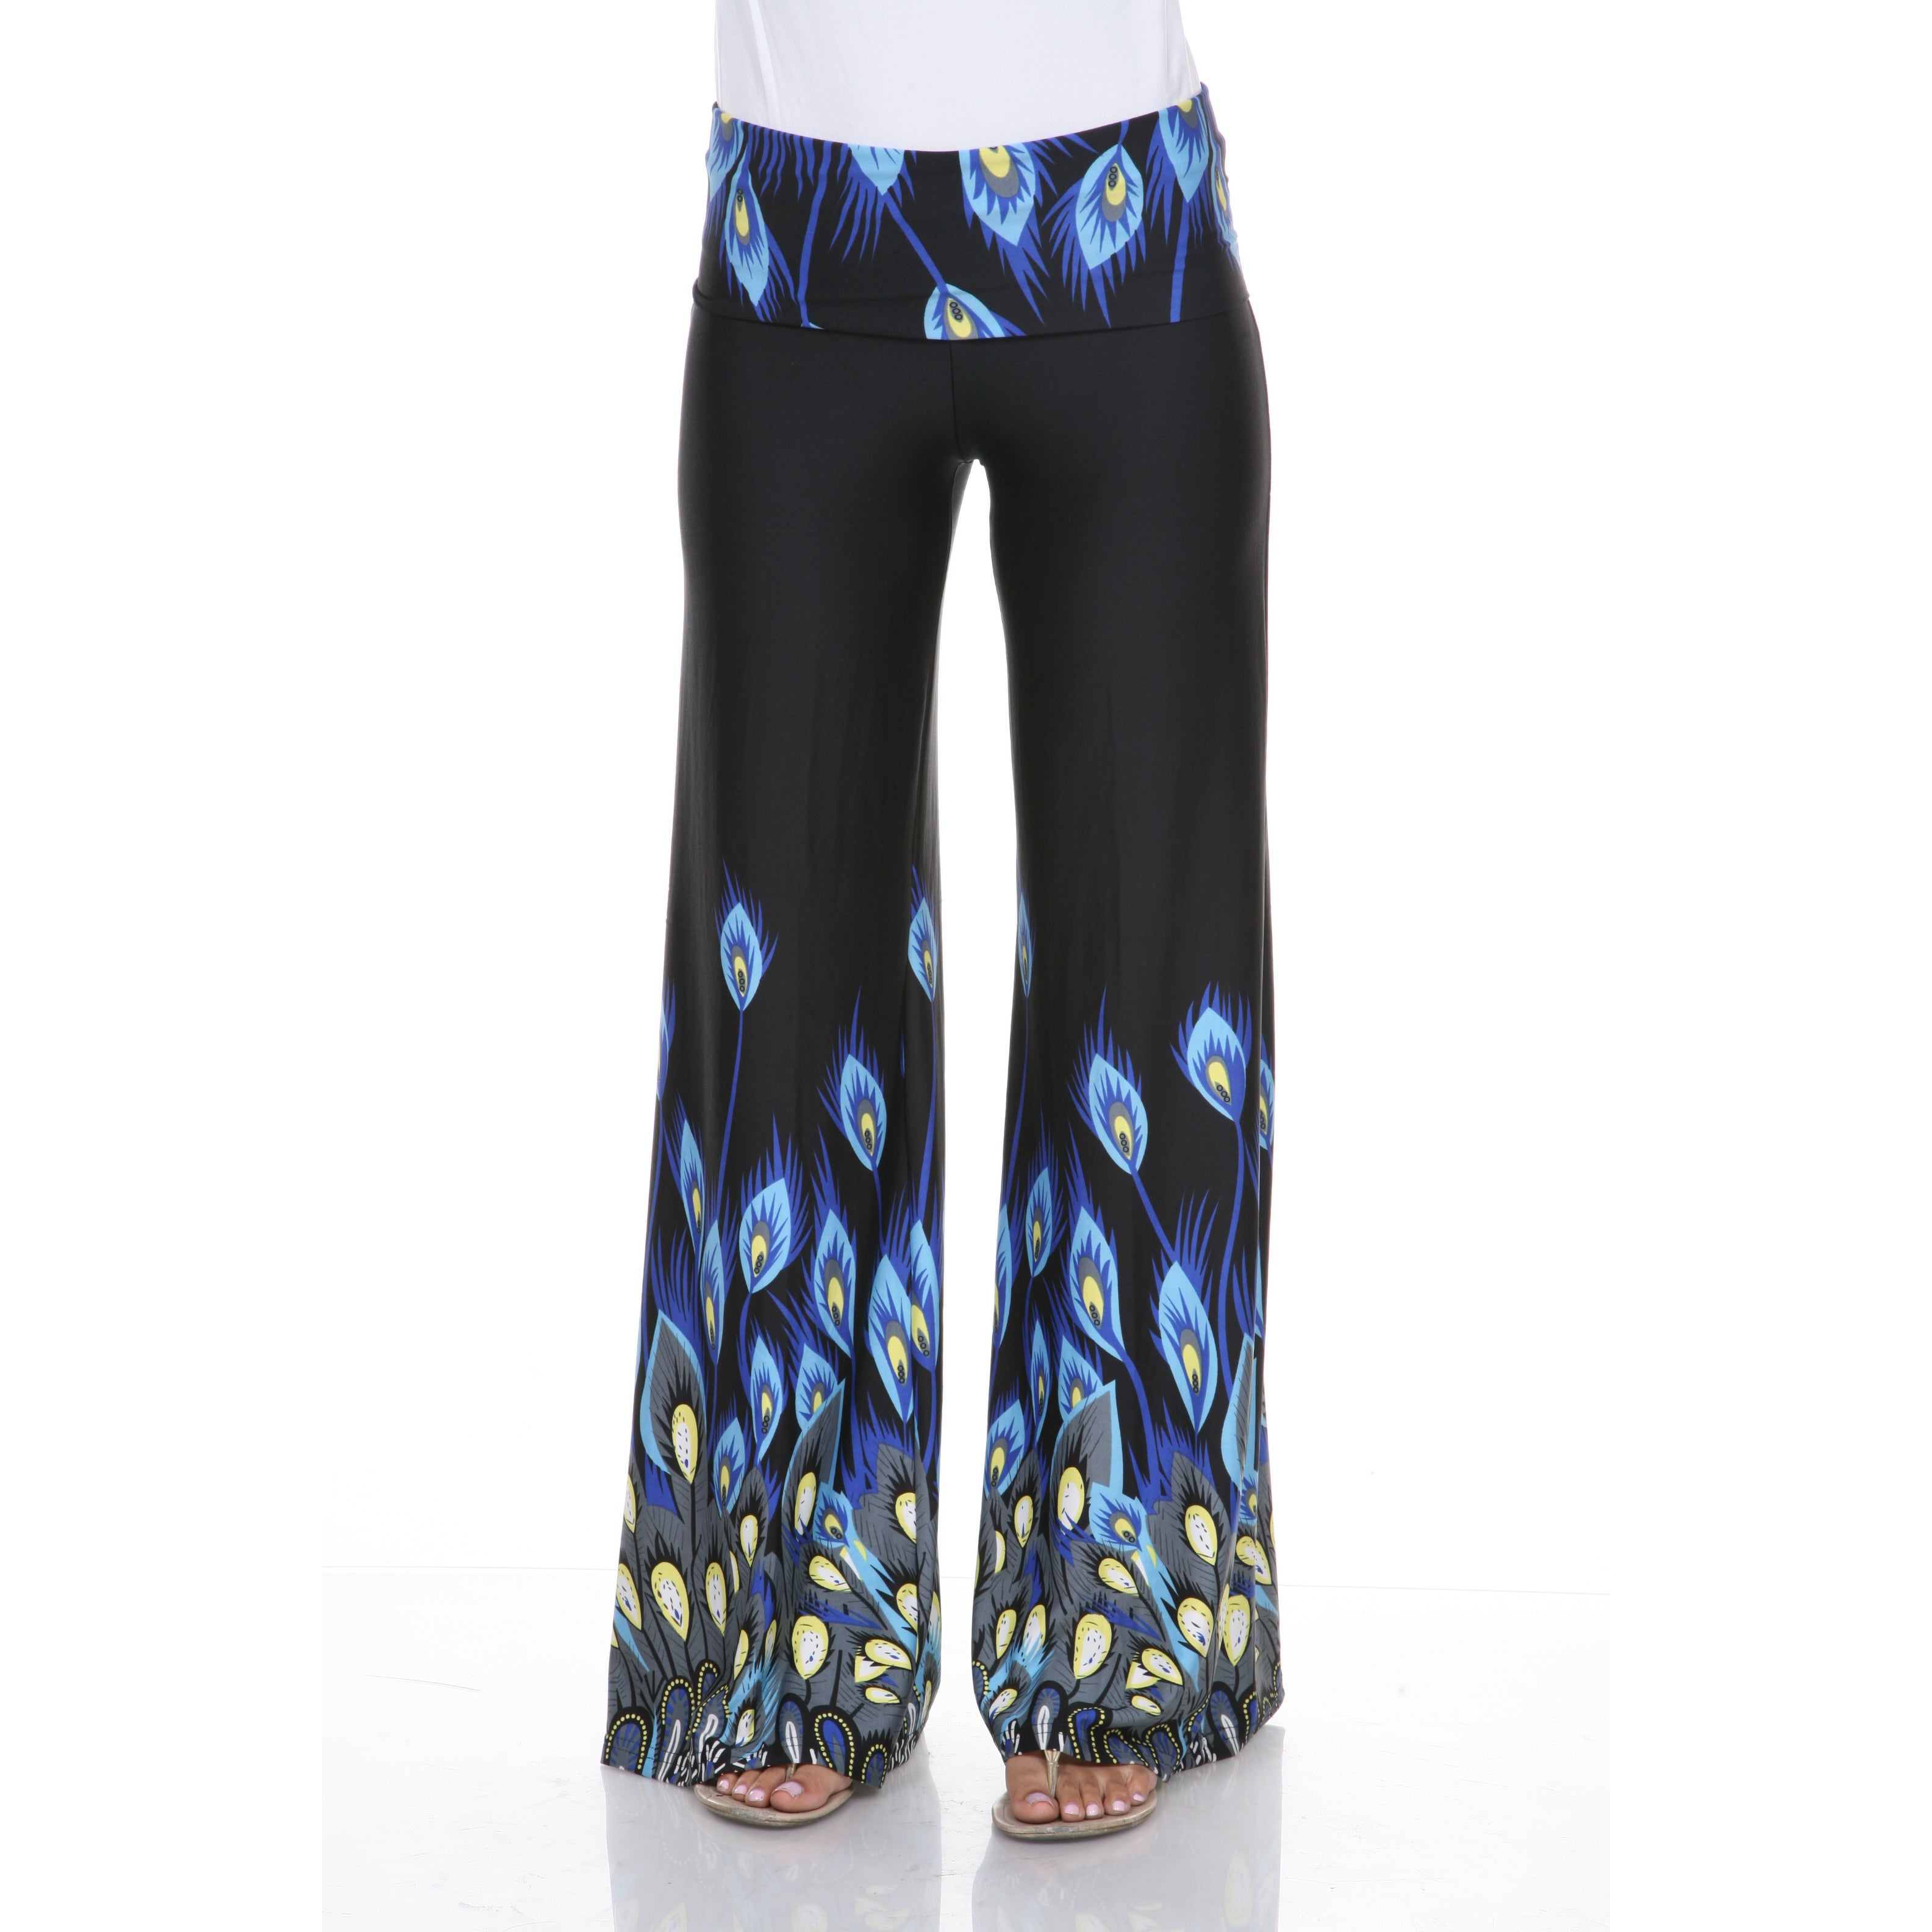 bf17854901395e Shop White Mark Women's 'Peacocks of a Feather' Palazzo Pants - Free  Shipping On Orders Over $45 - Overstock - 9613460